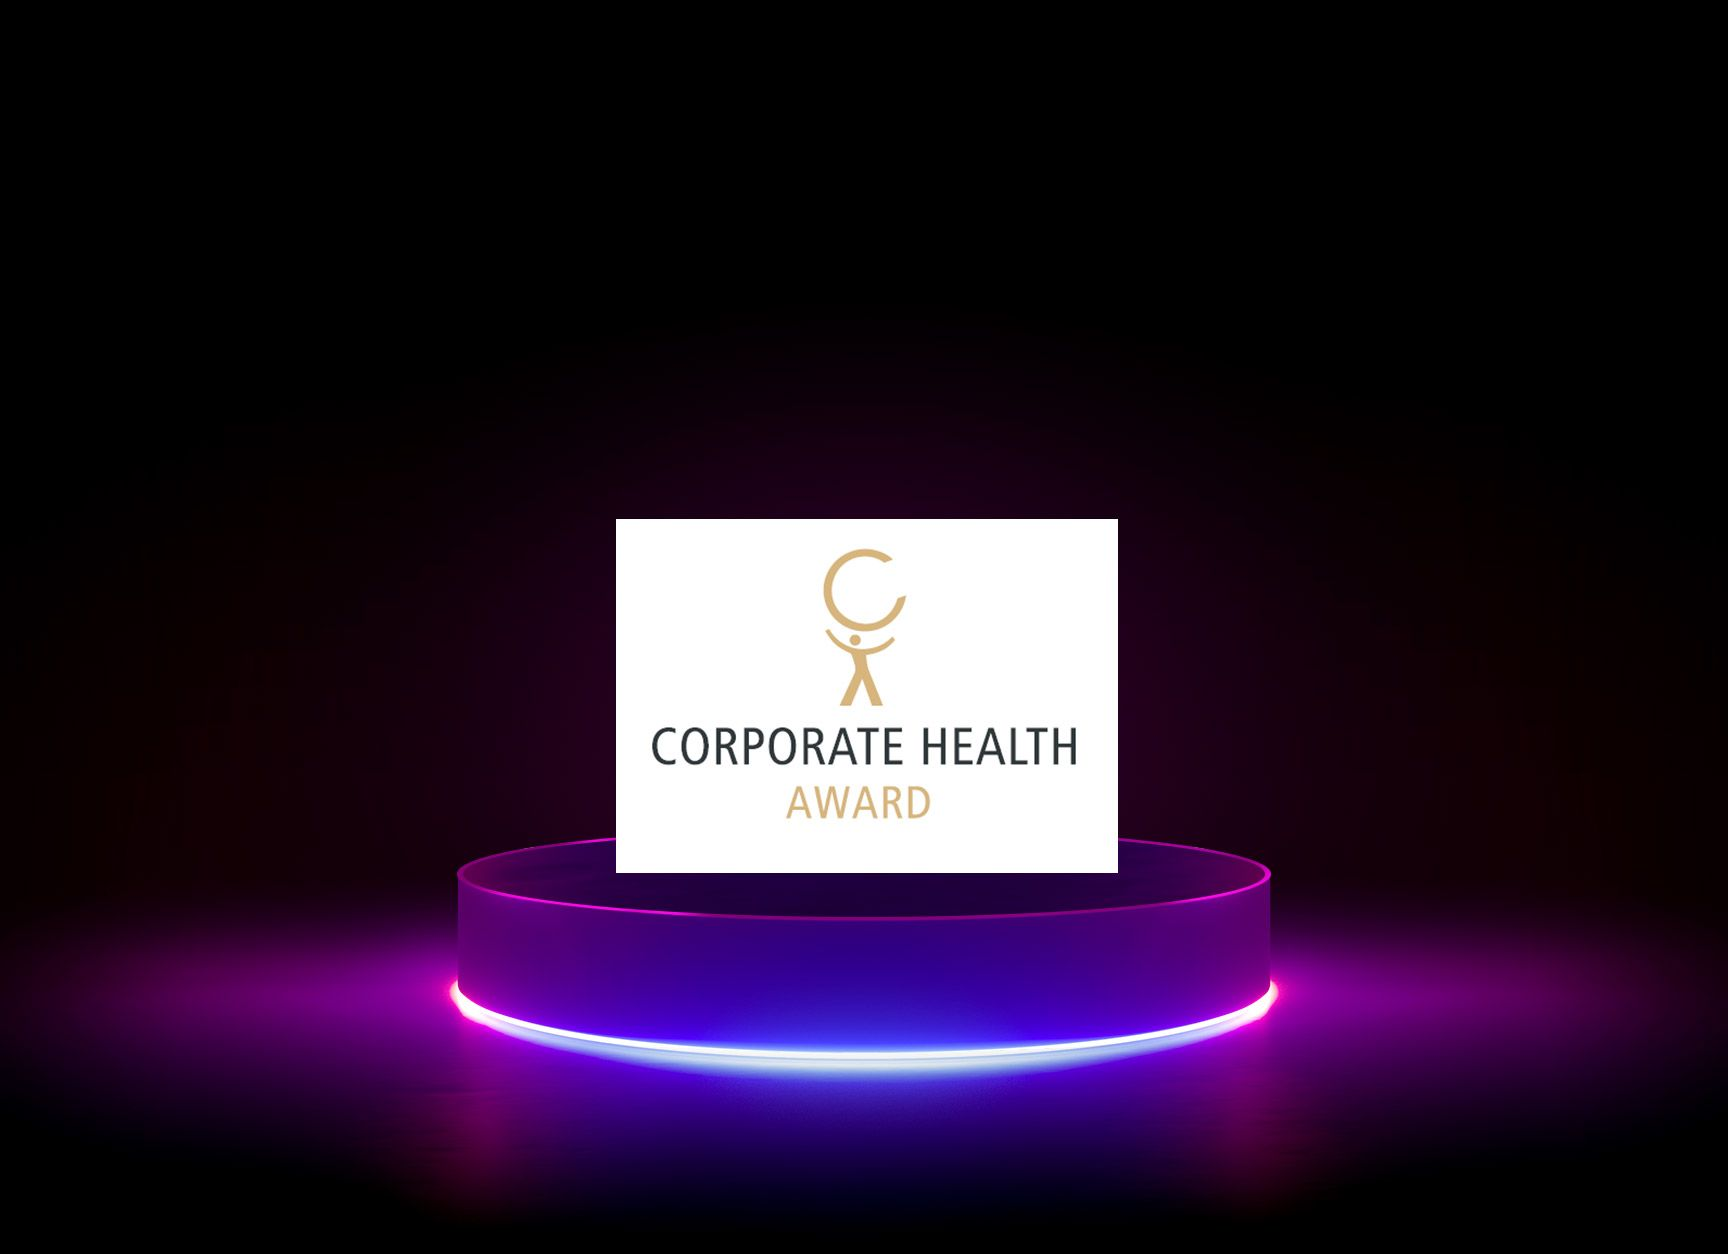 Corporate Health Award 2020 – diva-e in der Excellenceklasse